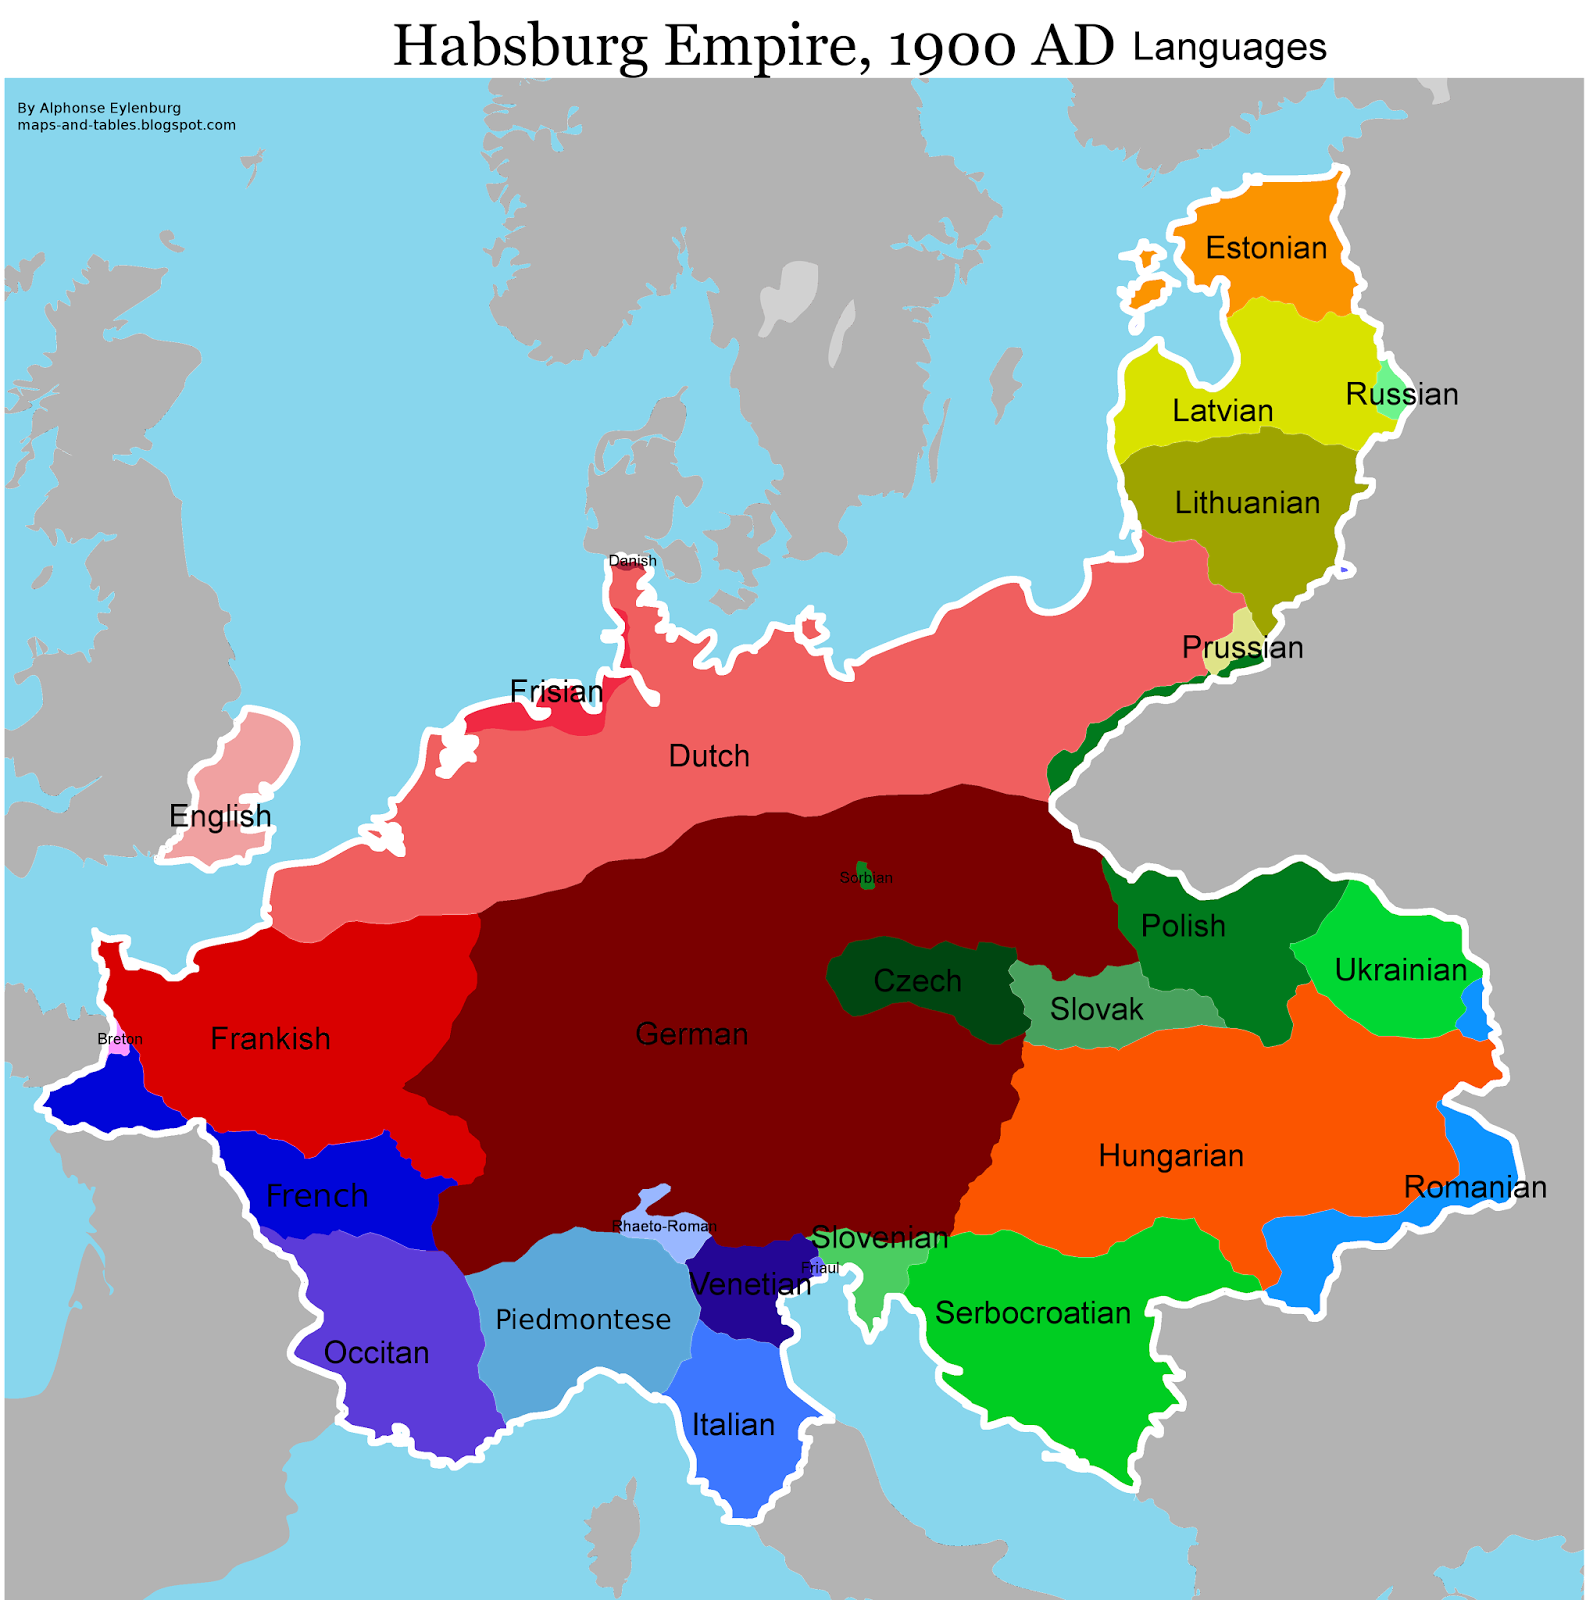 Habsburg Empire Pictures to Pin on Pinterest - PinsDaddy